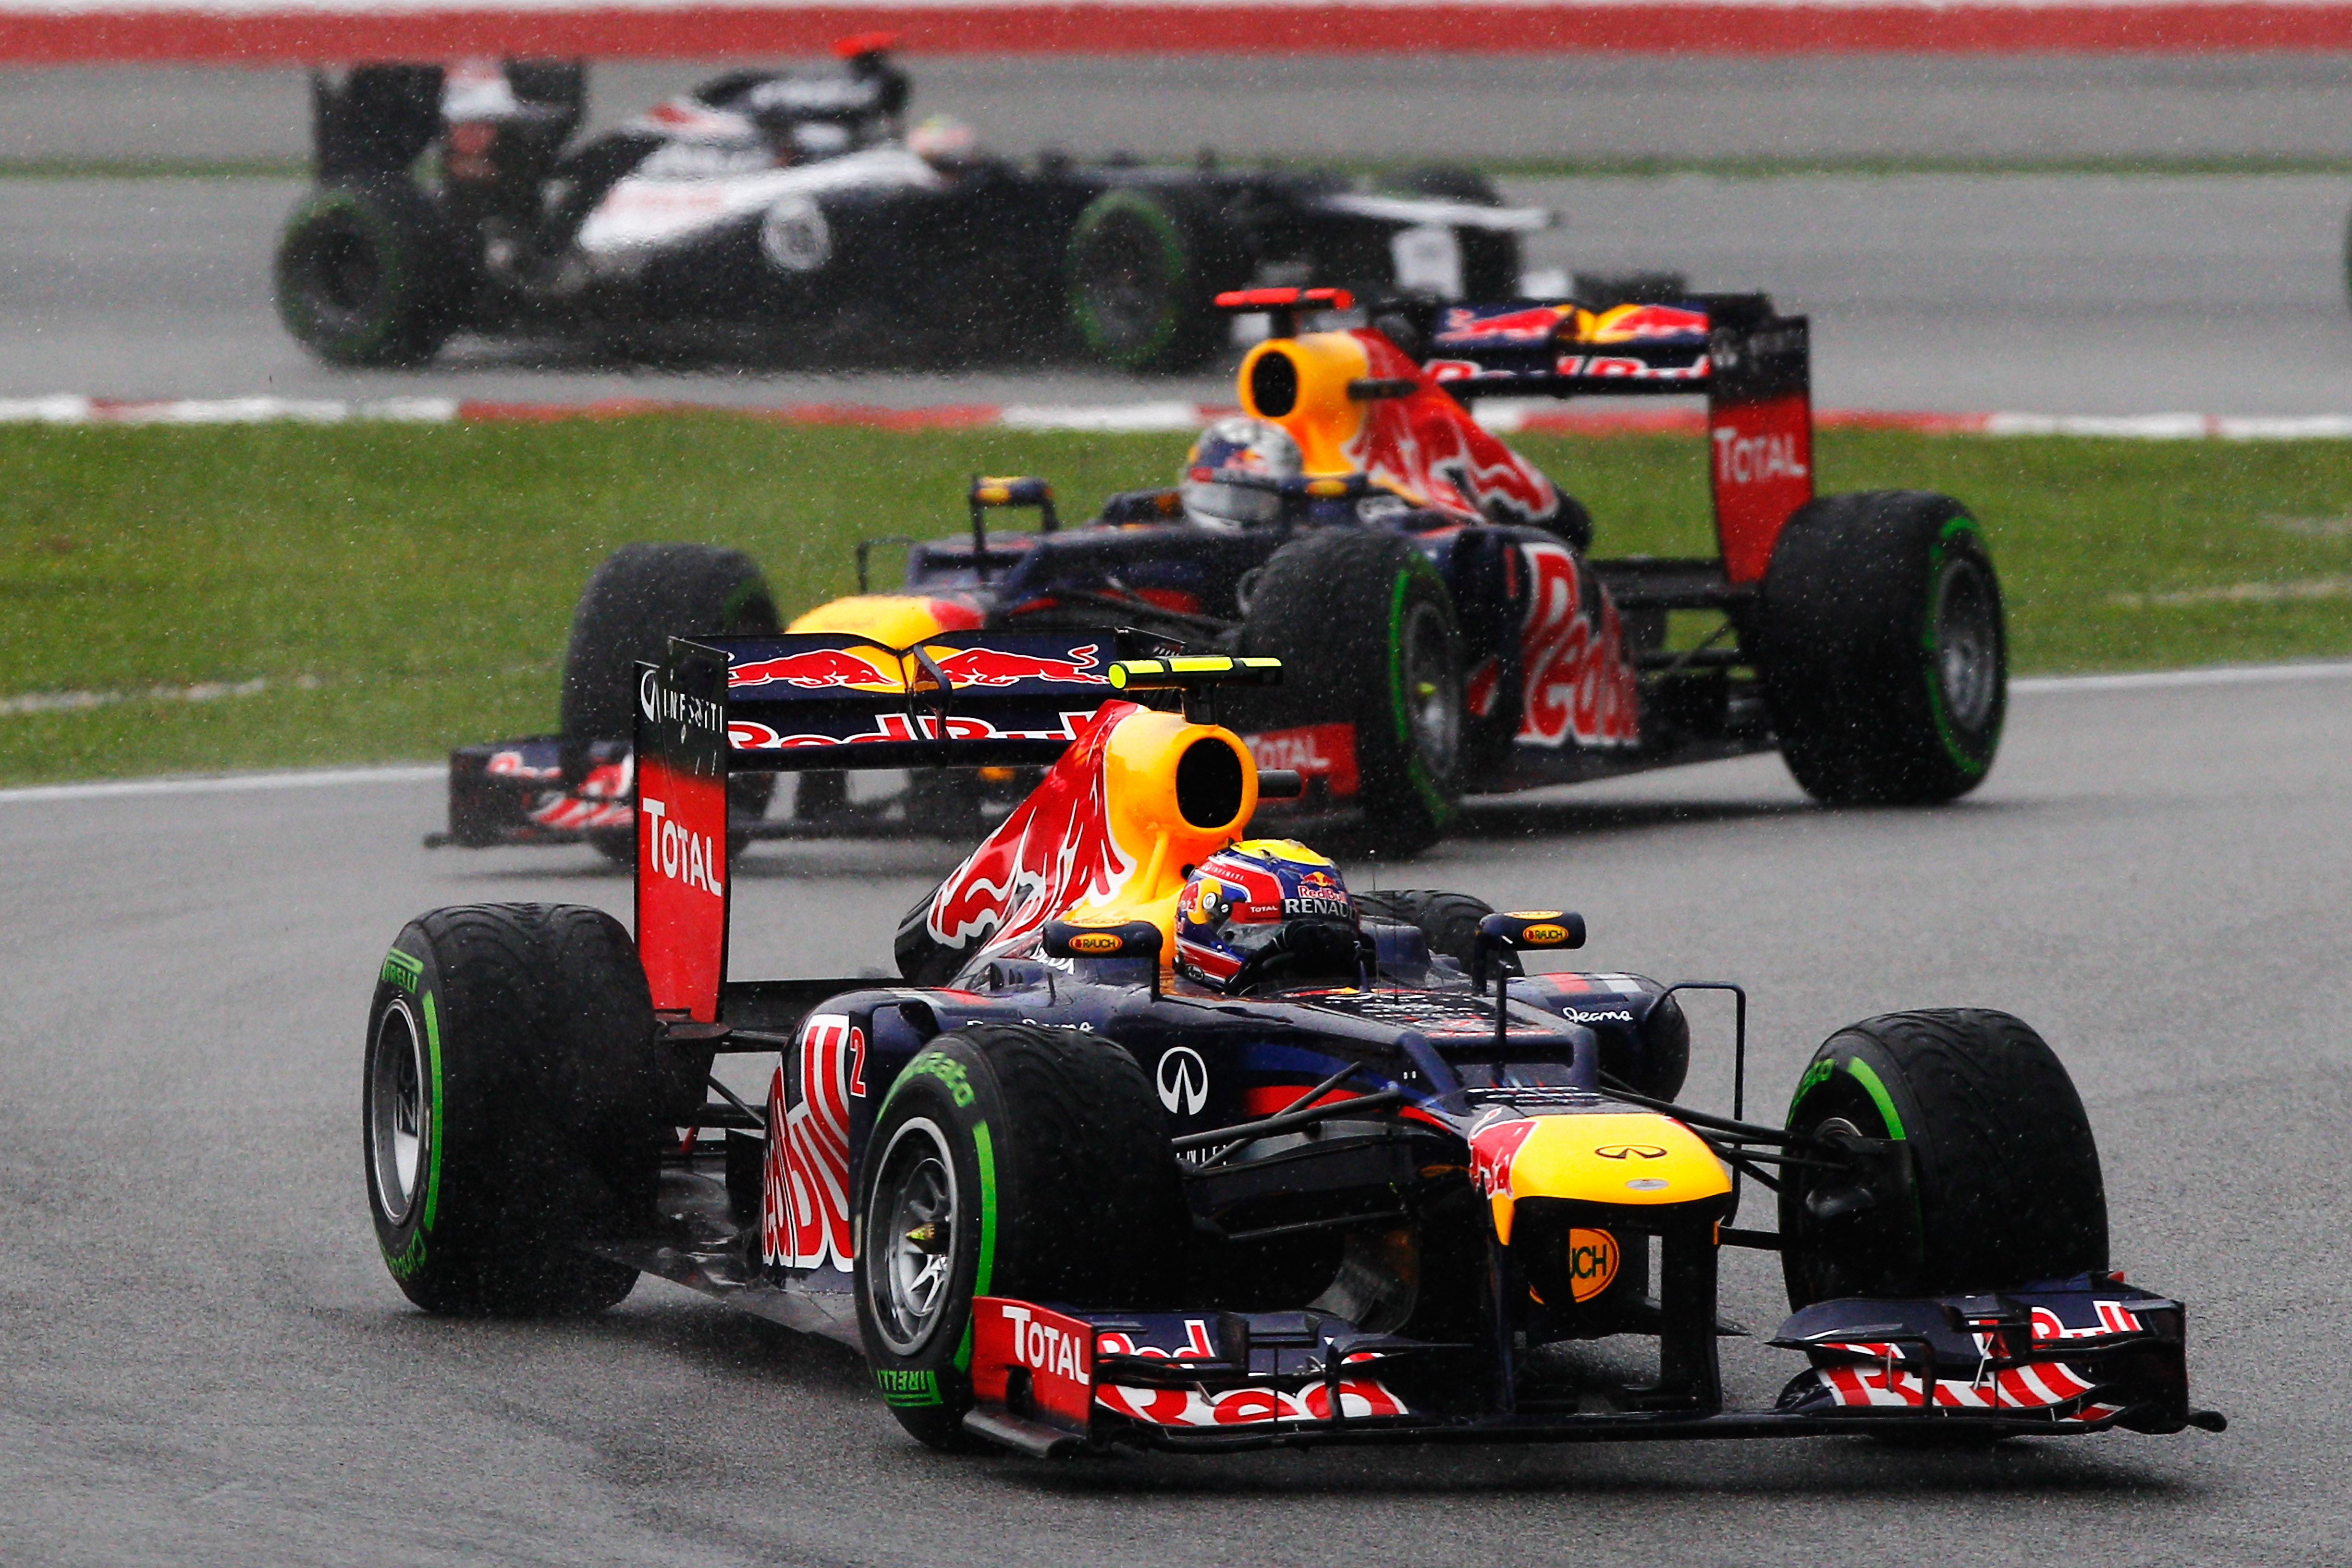 f1 results todays race